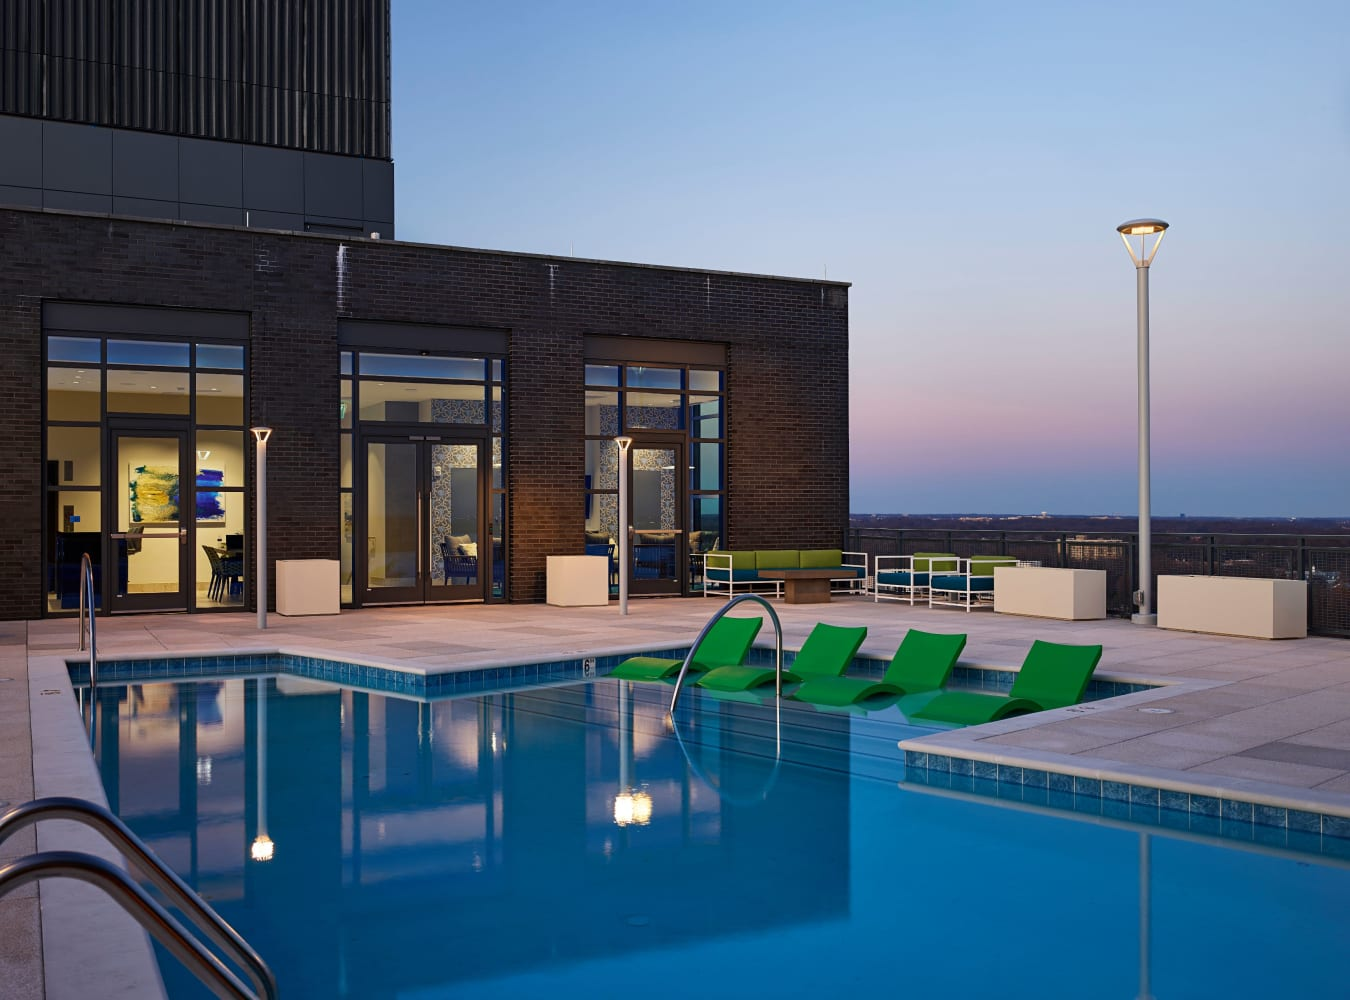 Luxury swimming pool with a view at Solaire 8250 Georgia in Silver Spring, Maryland